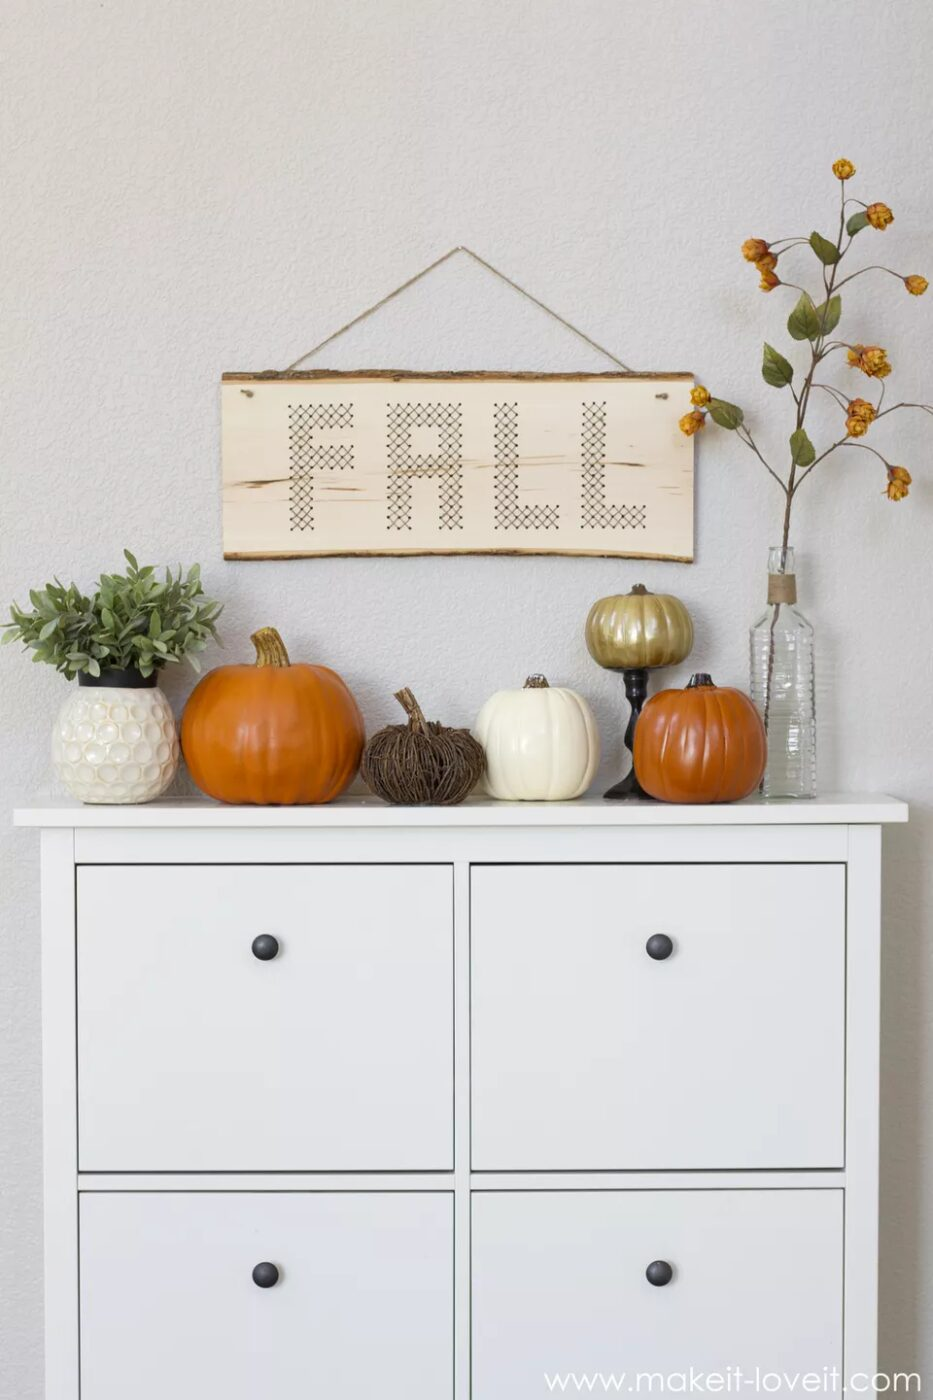 Get Your Home Ready for Fall: 15 Amazing DIY Decor Ideas (Part 1)